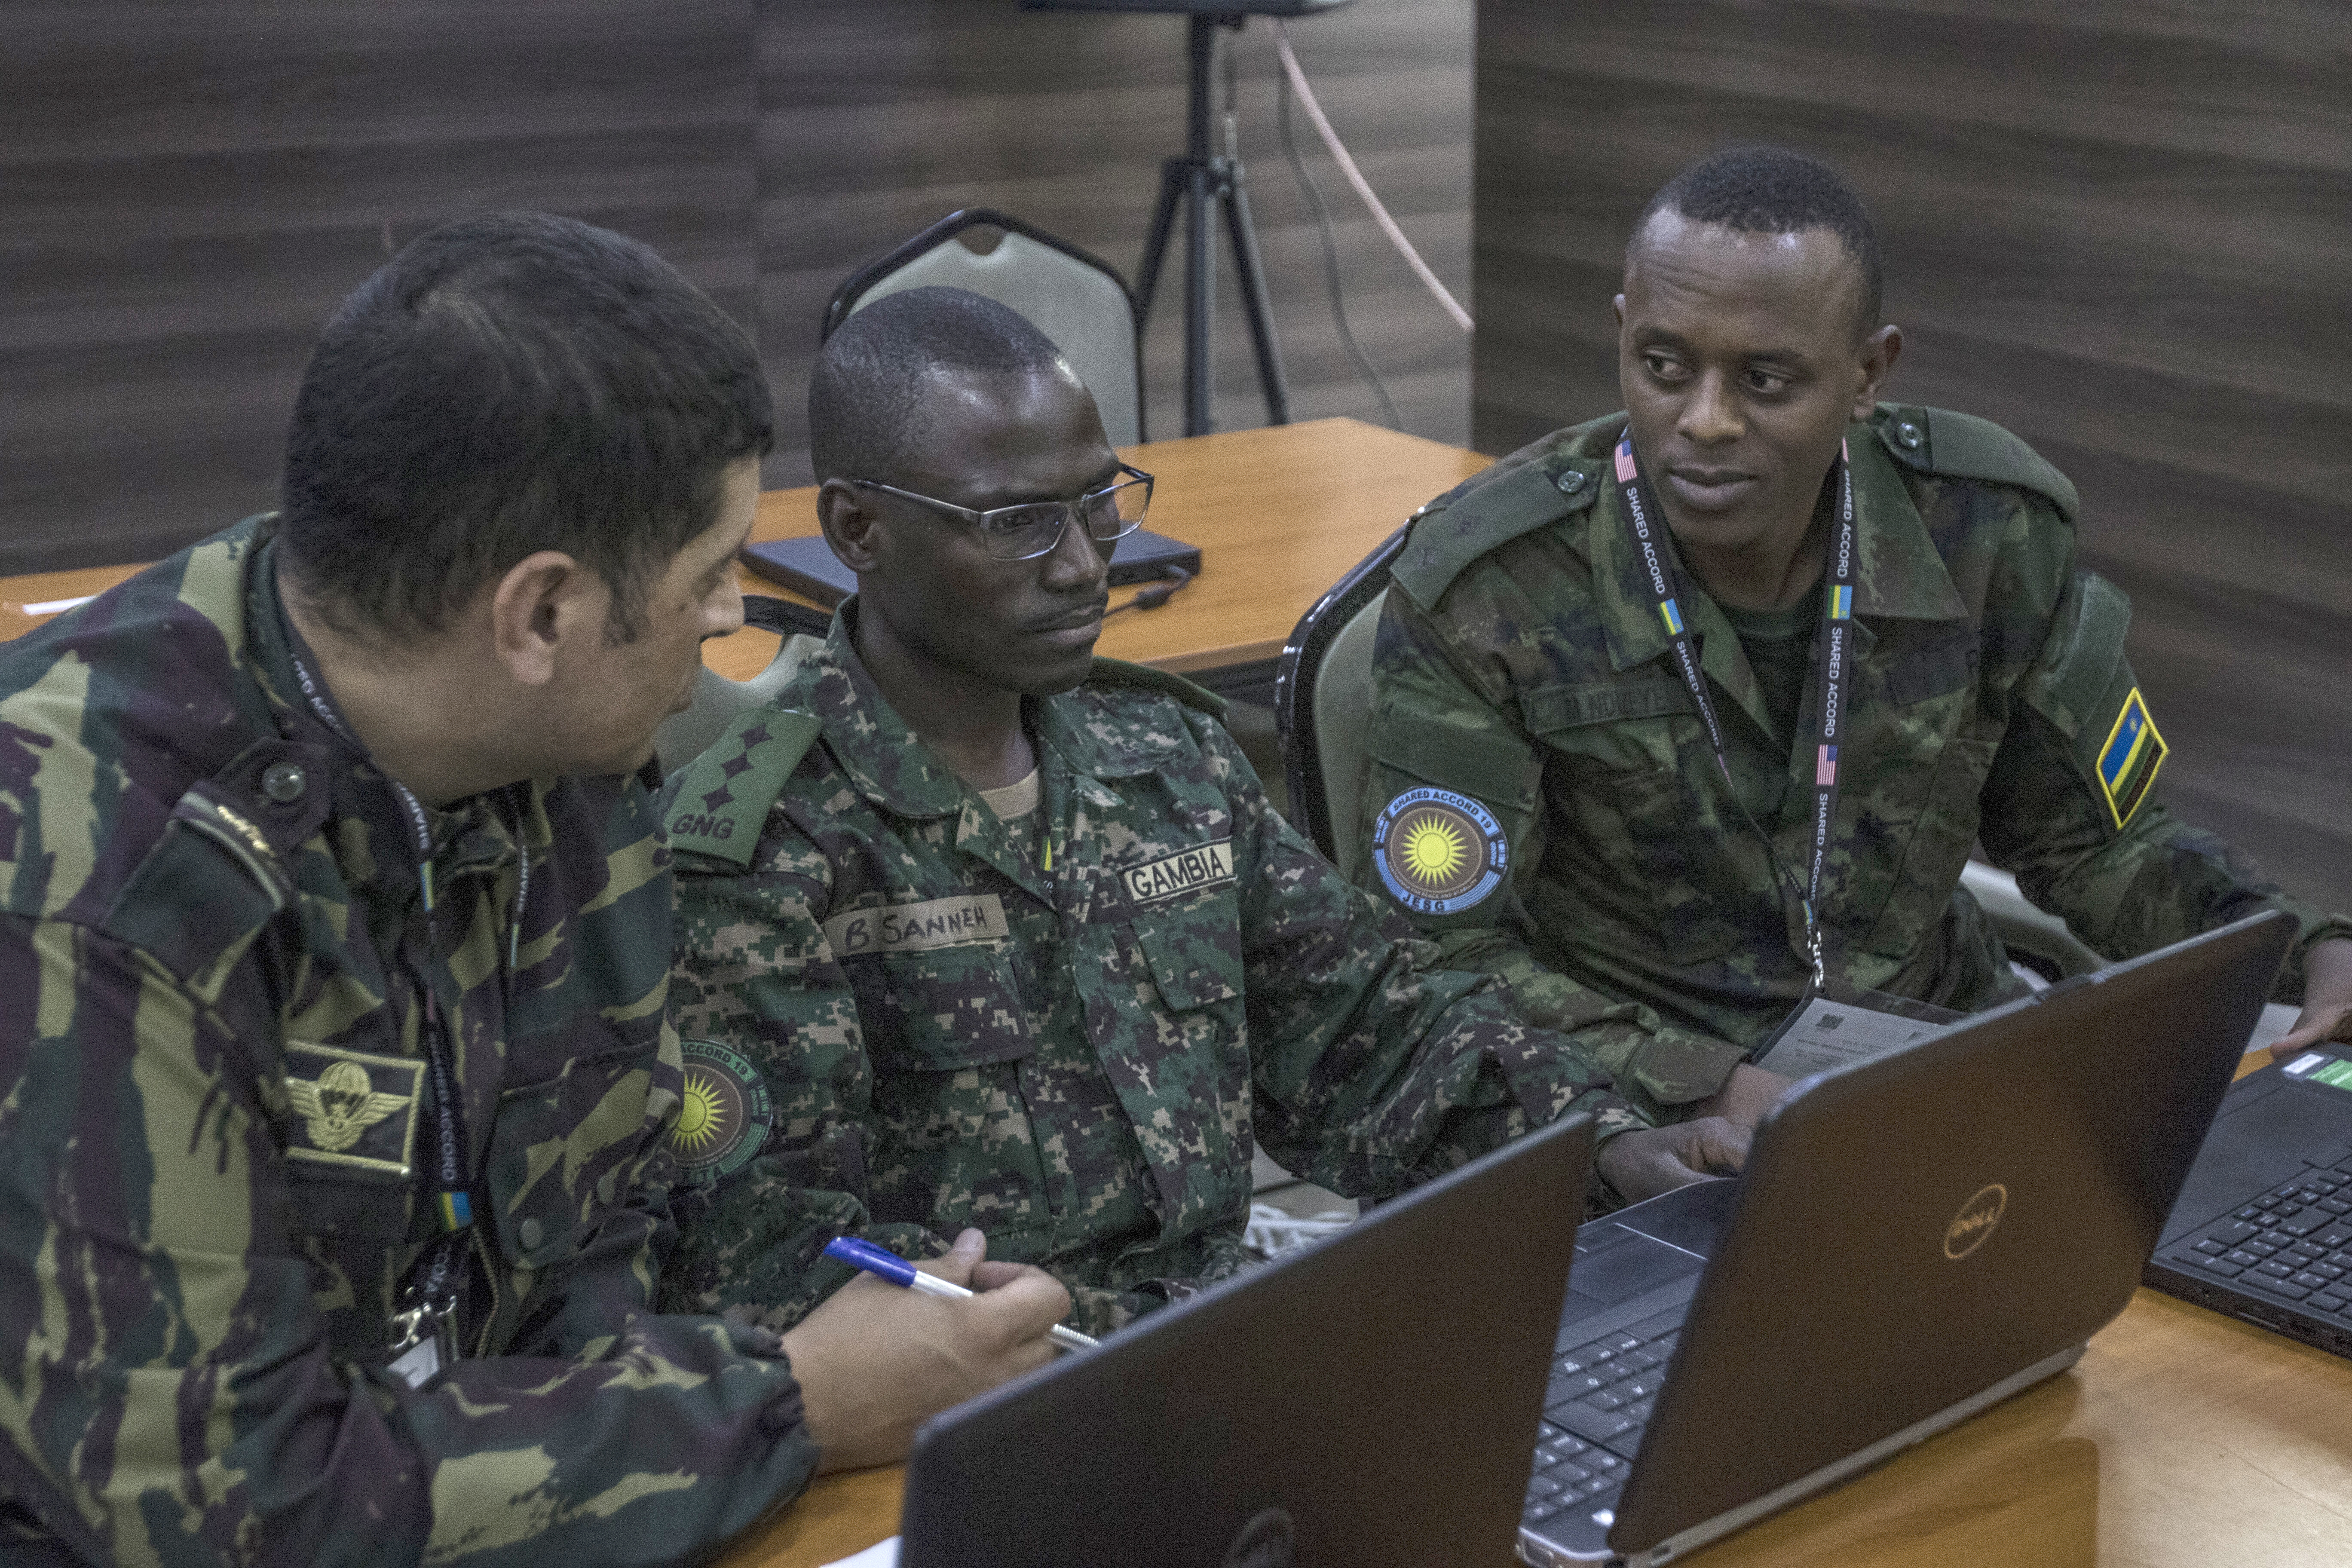 African legal advisors participate in Shared Accord 19, a multinational military exercise which took place in and around the Rwanda Defense Force Gabiro Training Center, Rwanda, Aug. 14-28, 2019. The exercise, sponsored by U.S. Africa Command and executed by U.S. Army Africa, the Rwanda Defence Force and other partner nations, seeks to improve the interoperability between vested stakeholders by enhancing the capacity and capability of Troop Contributing Counties to the Multidimensional Integrated Stabilization Mission in the Central African Republic. (U.S. Army photo by Sgt. Heather Doppke)